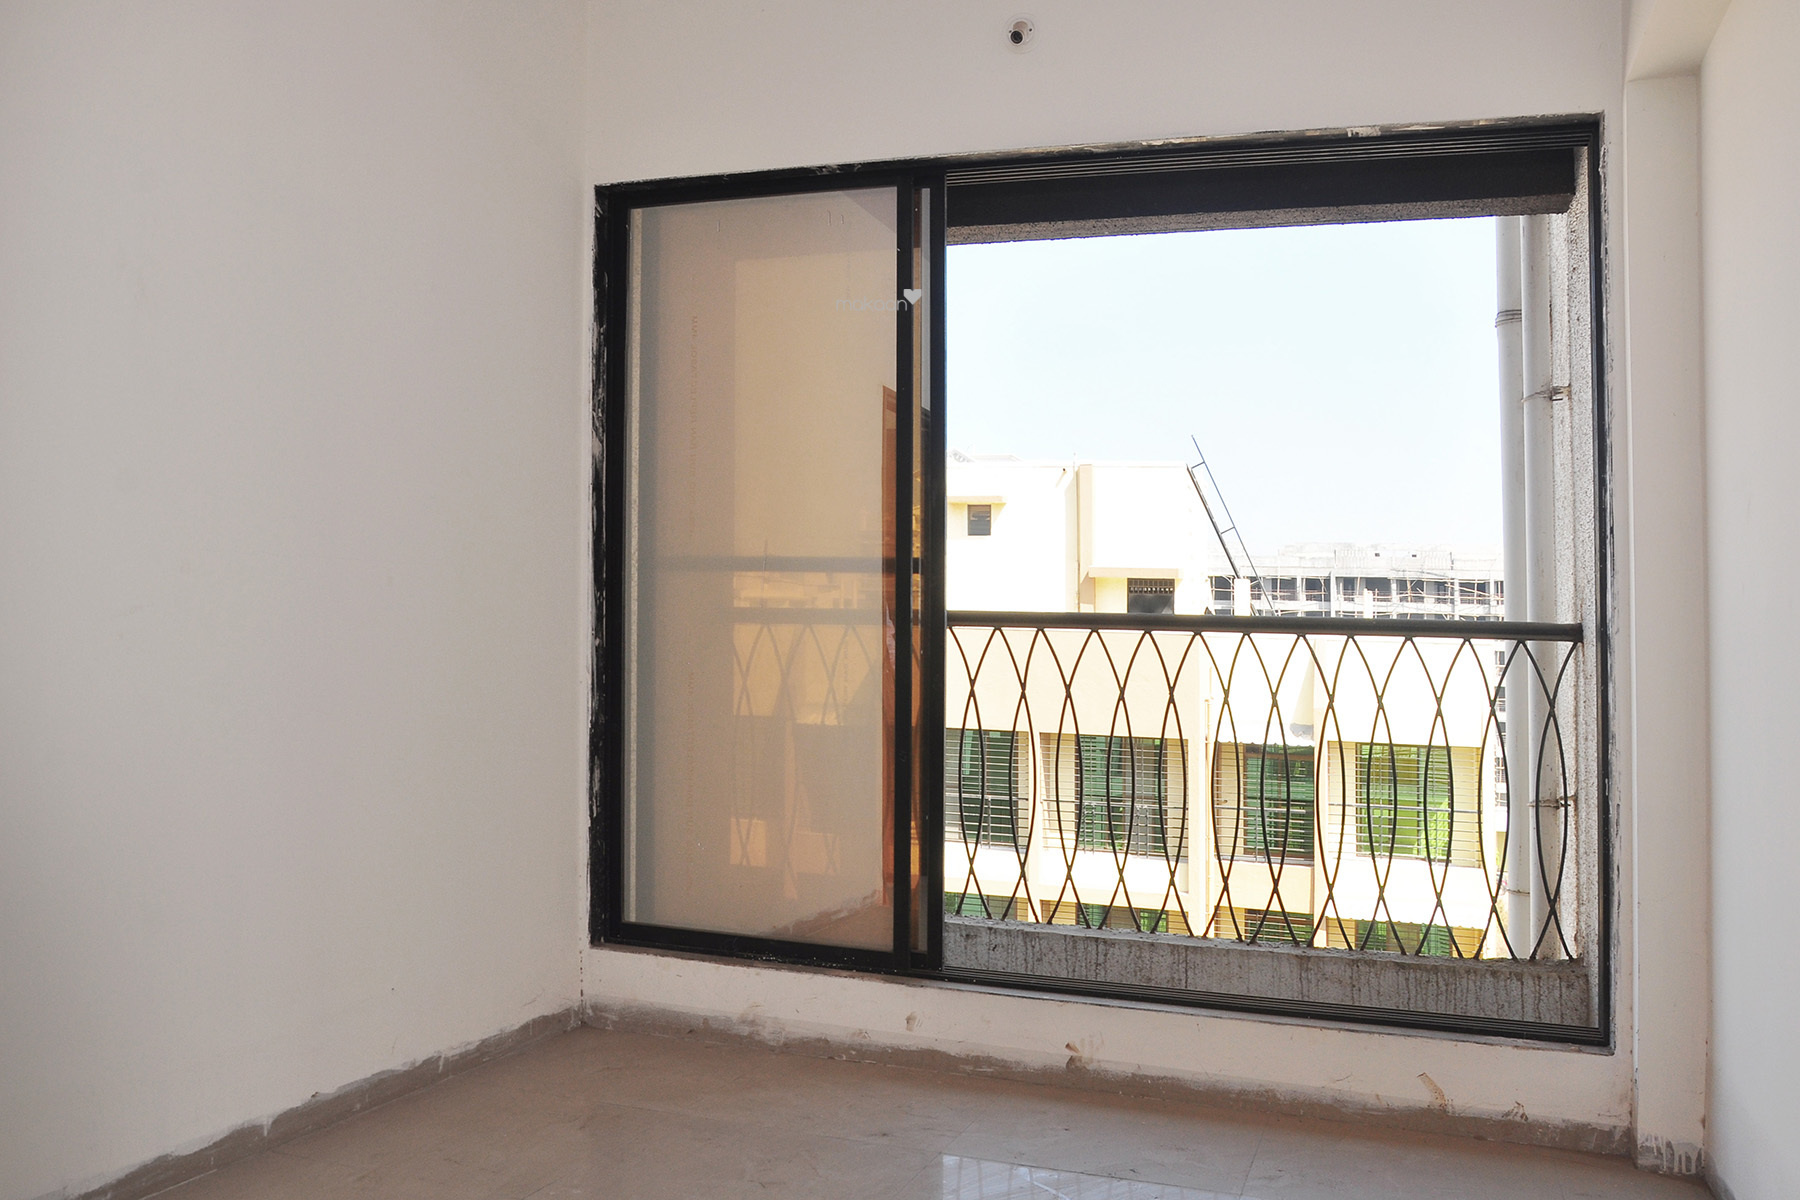 1045 sq ft 2BHK 2BHK+2T (1,045 sq ft) Property By Proptiger In One, Ulwe